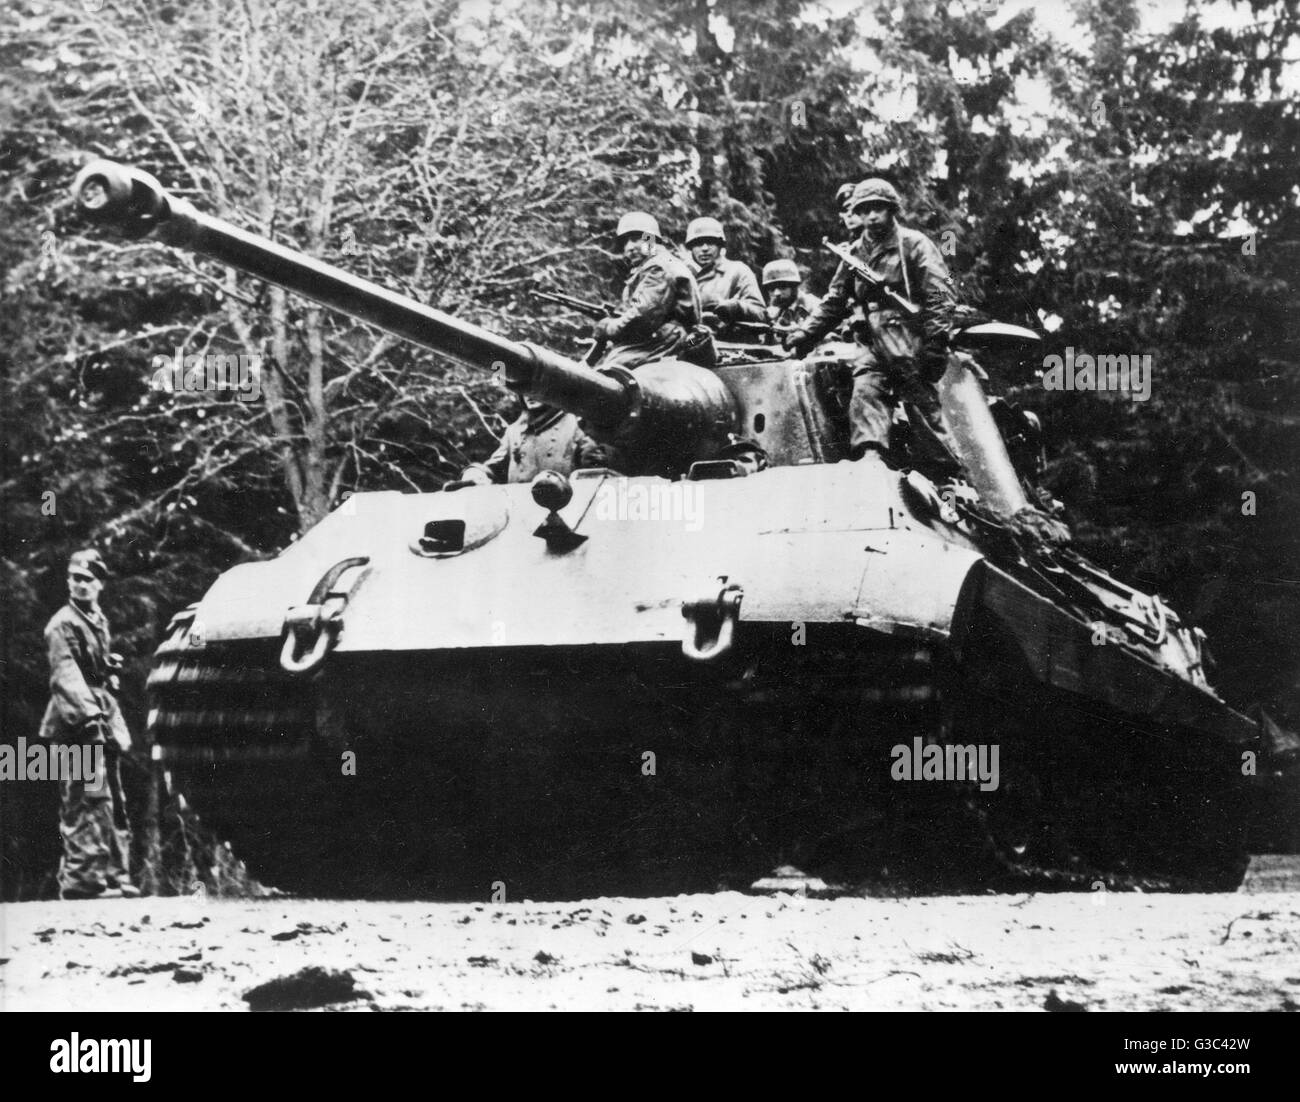 Panzer tank stock photos panzer tank stock images alamy a german panzer tank pictured during the ardennes counter offensive which became known as publicscrutiny Gallery